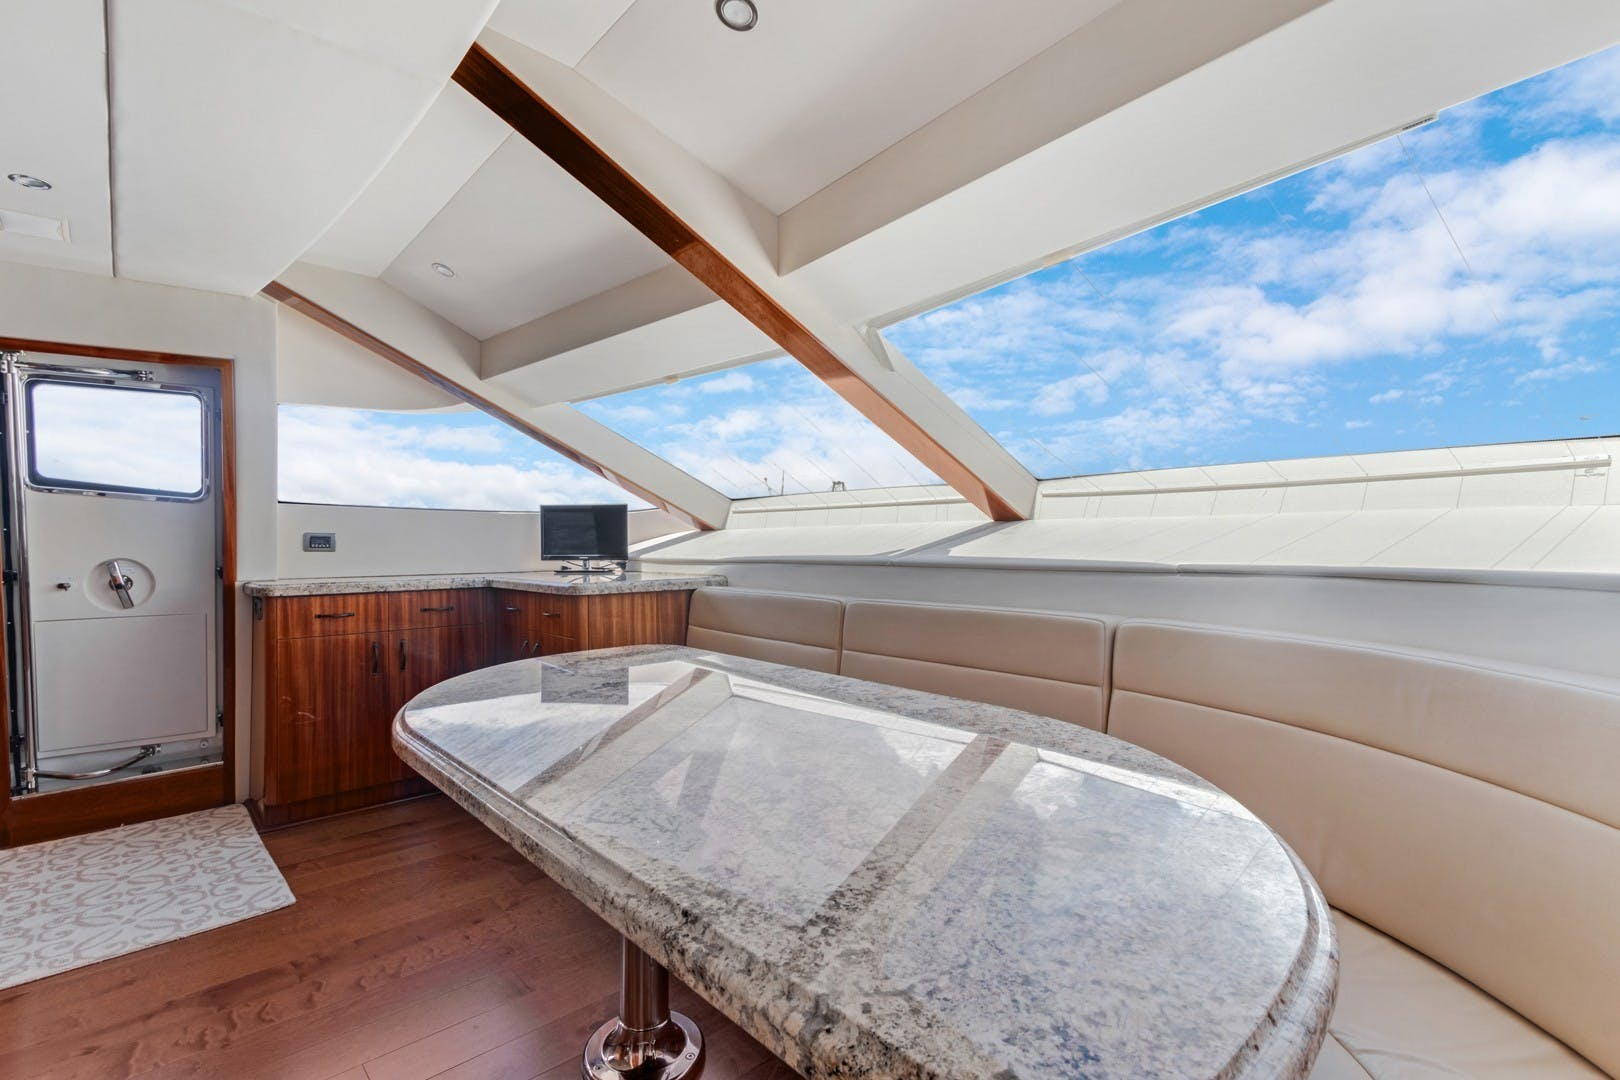 2012 Hatteras 80' Enclosed Bridge Motor Yacht OBSESSION   Picture 7 of 76